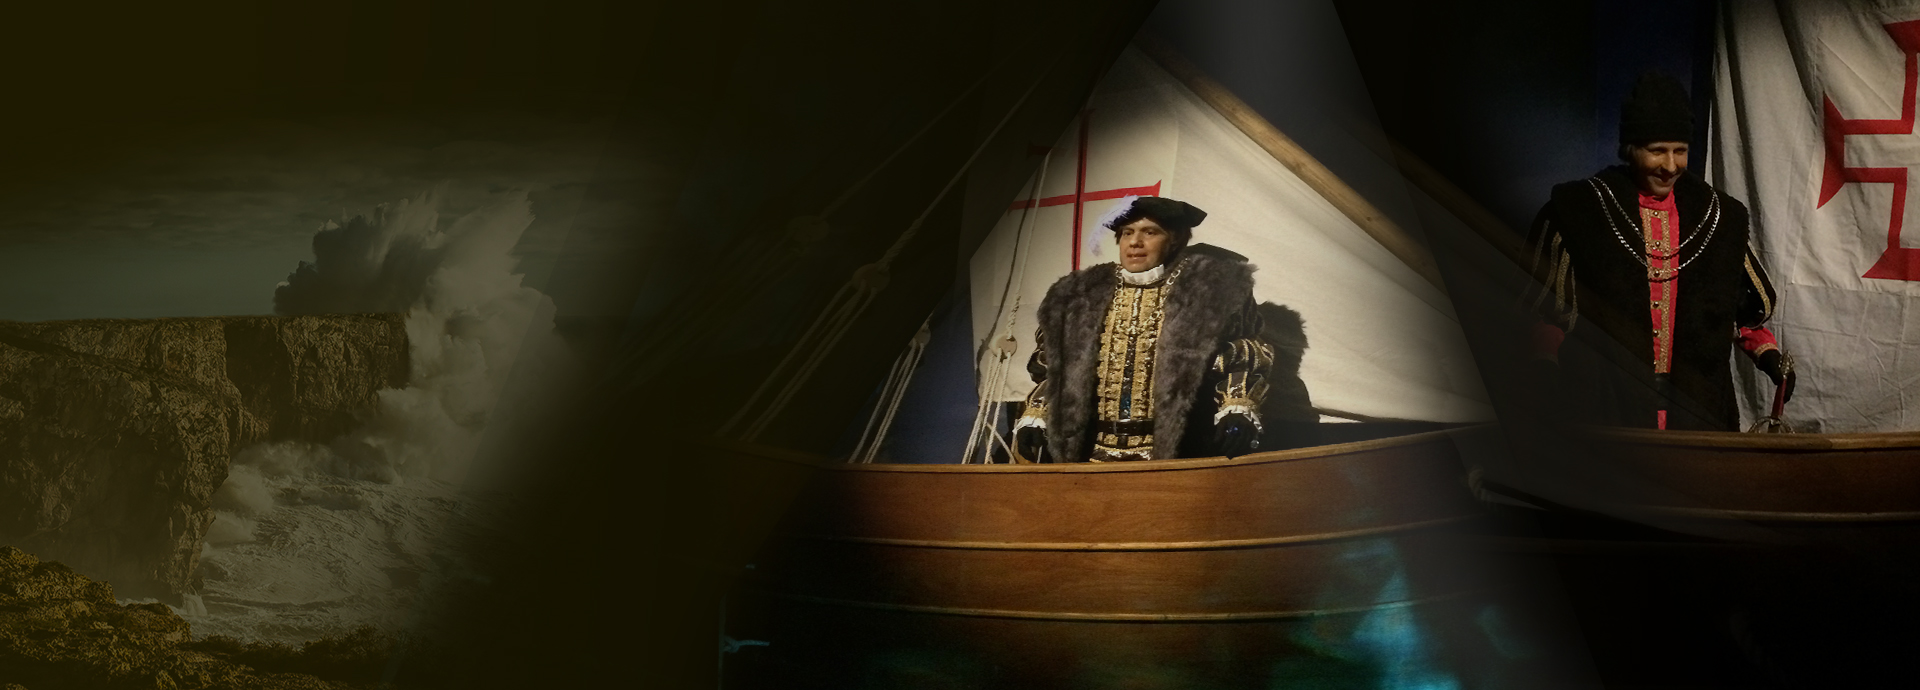 Wax Museum of the Portuguese Discoveries - Lagos, Portugal